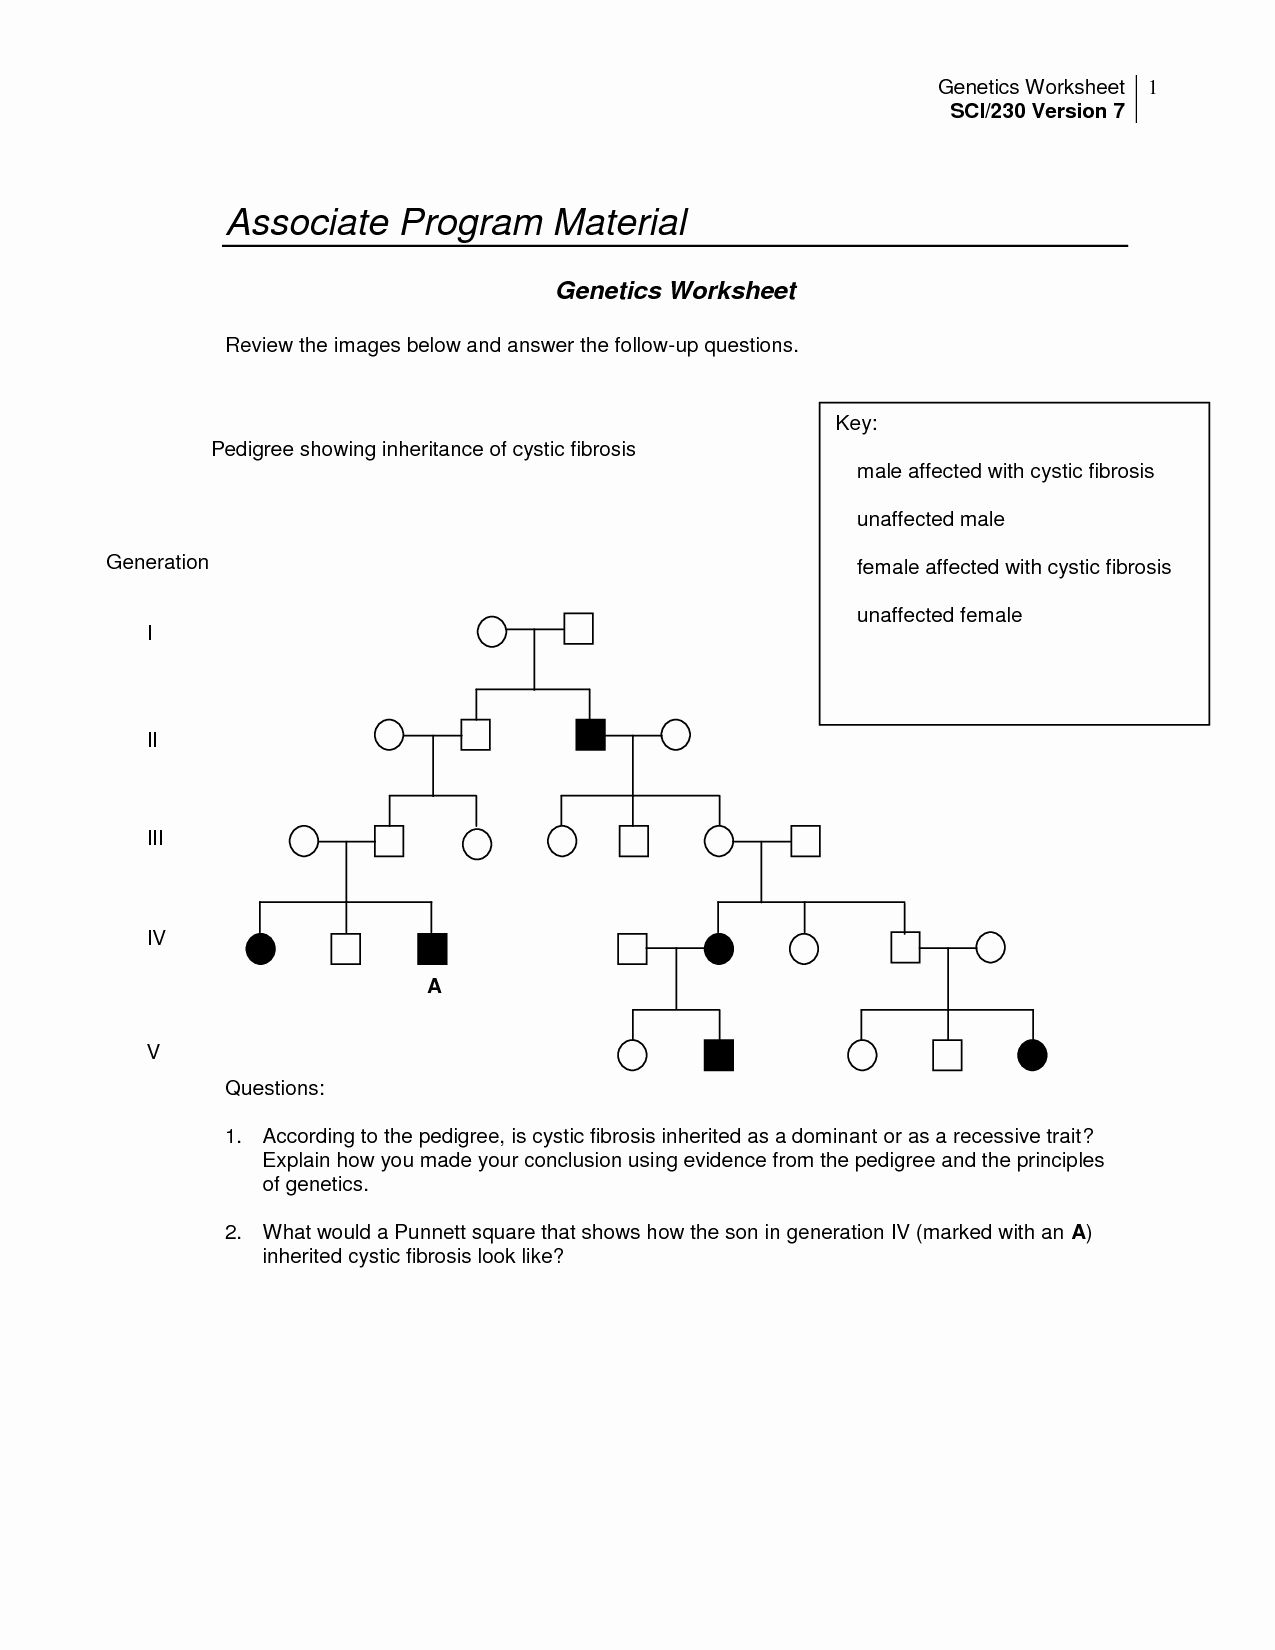 Genetics Pedigree Worksheet Answers Awesome 14 Best Of